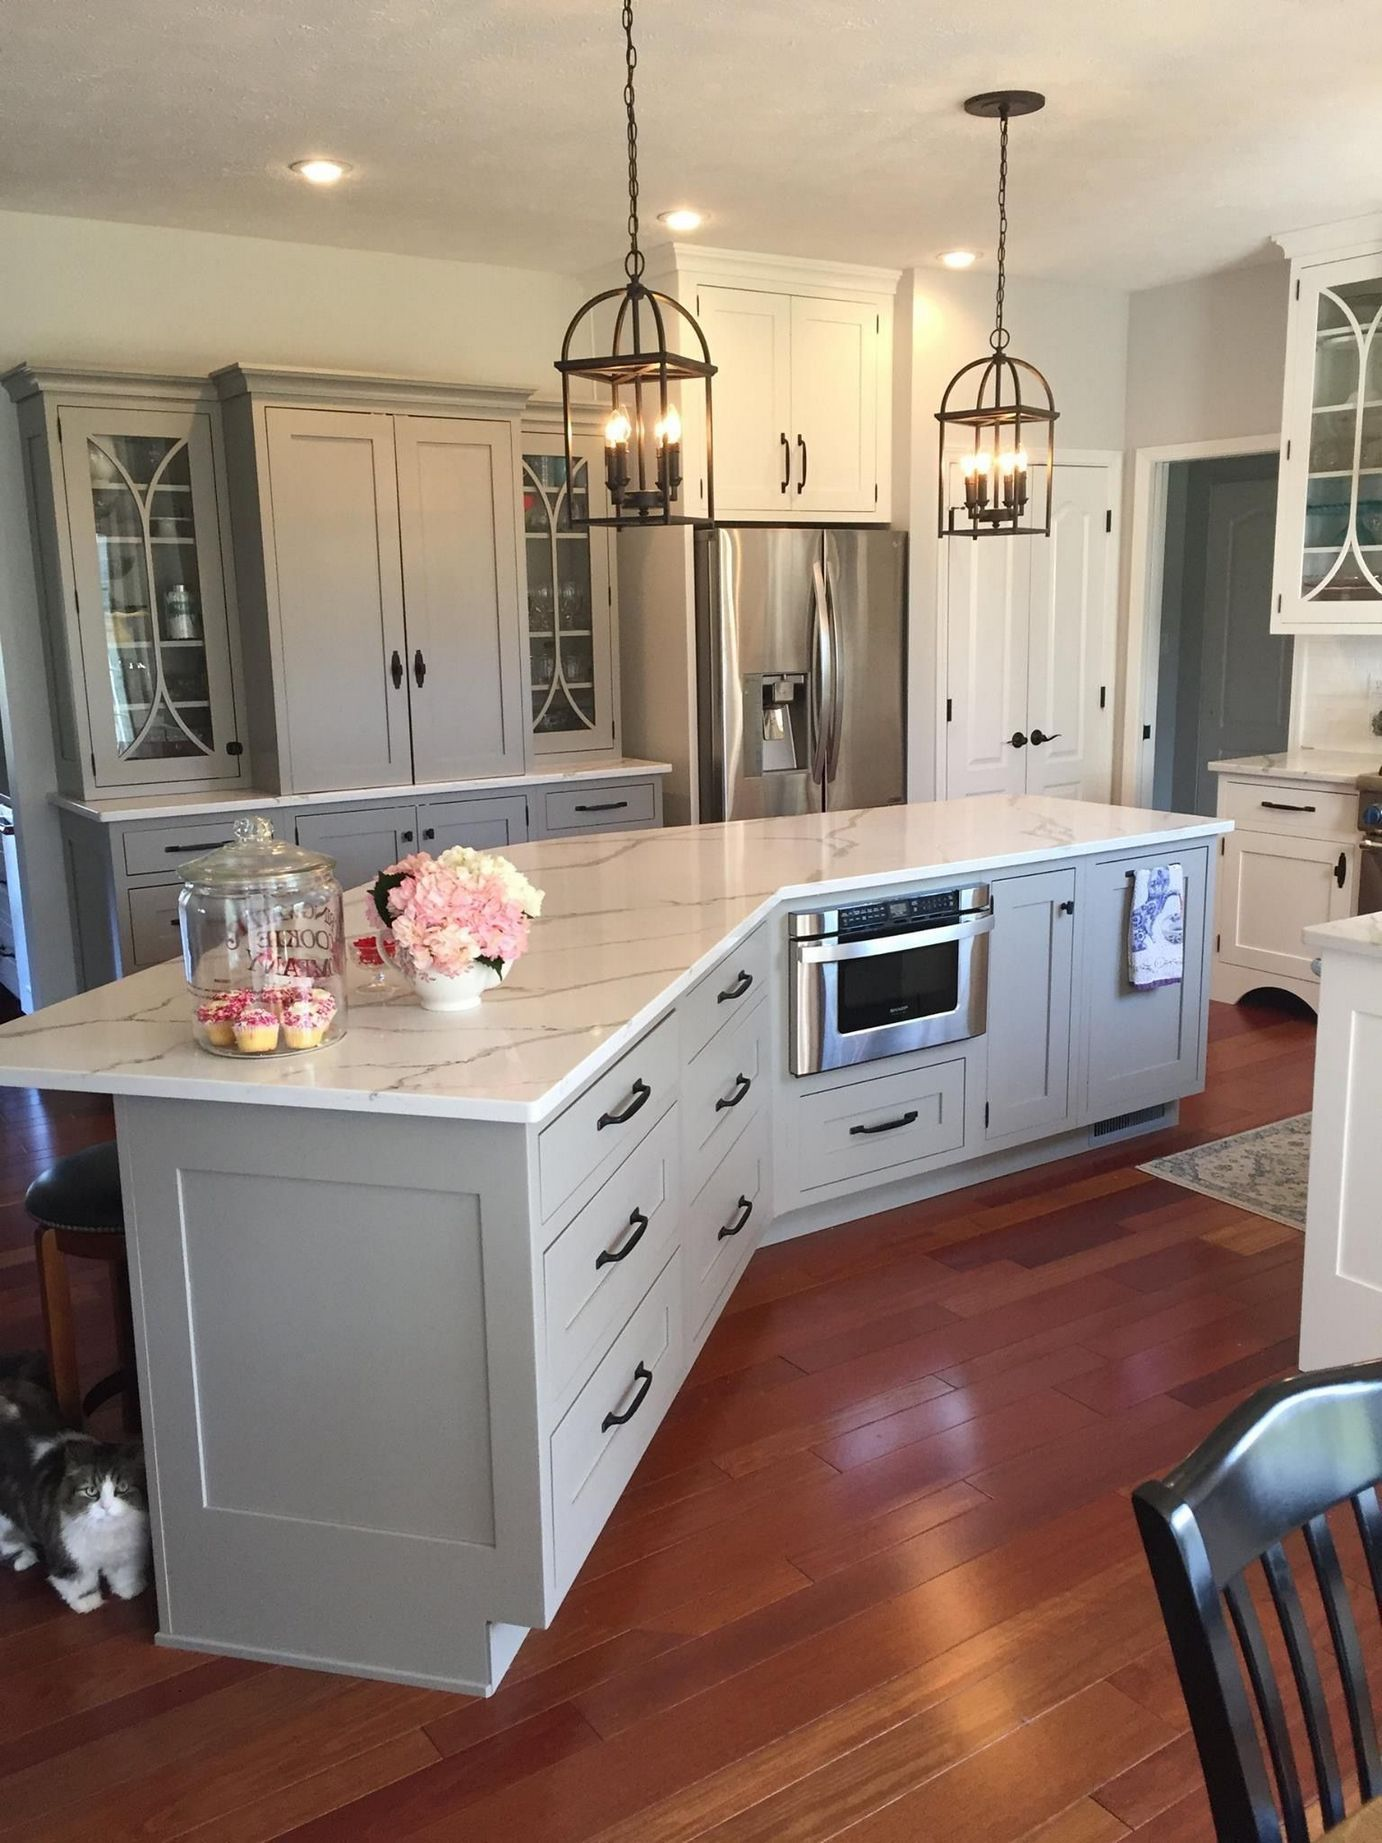 the end of angled kitchen island ideas layout 163 mswhomesolutions com diy kitchen on kitchen island ideas diy id=81627